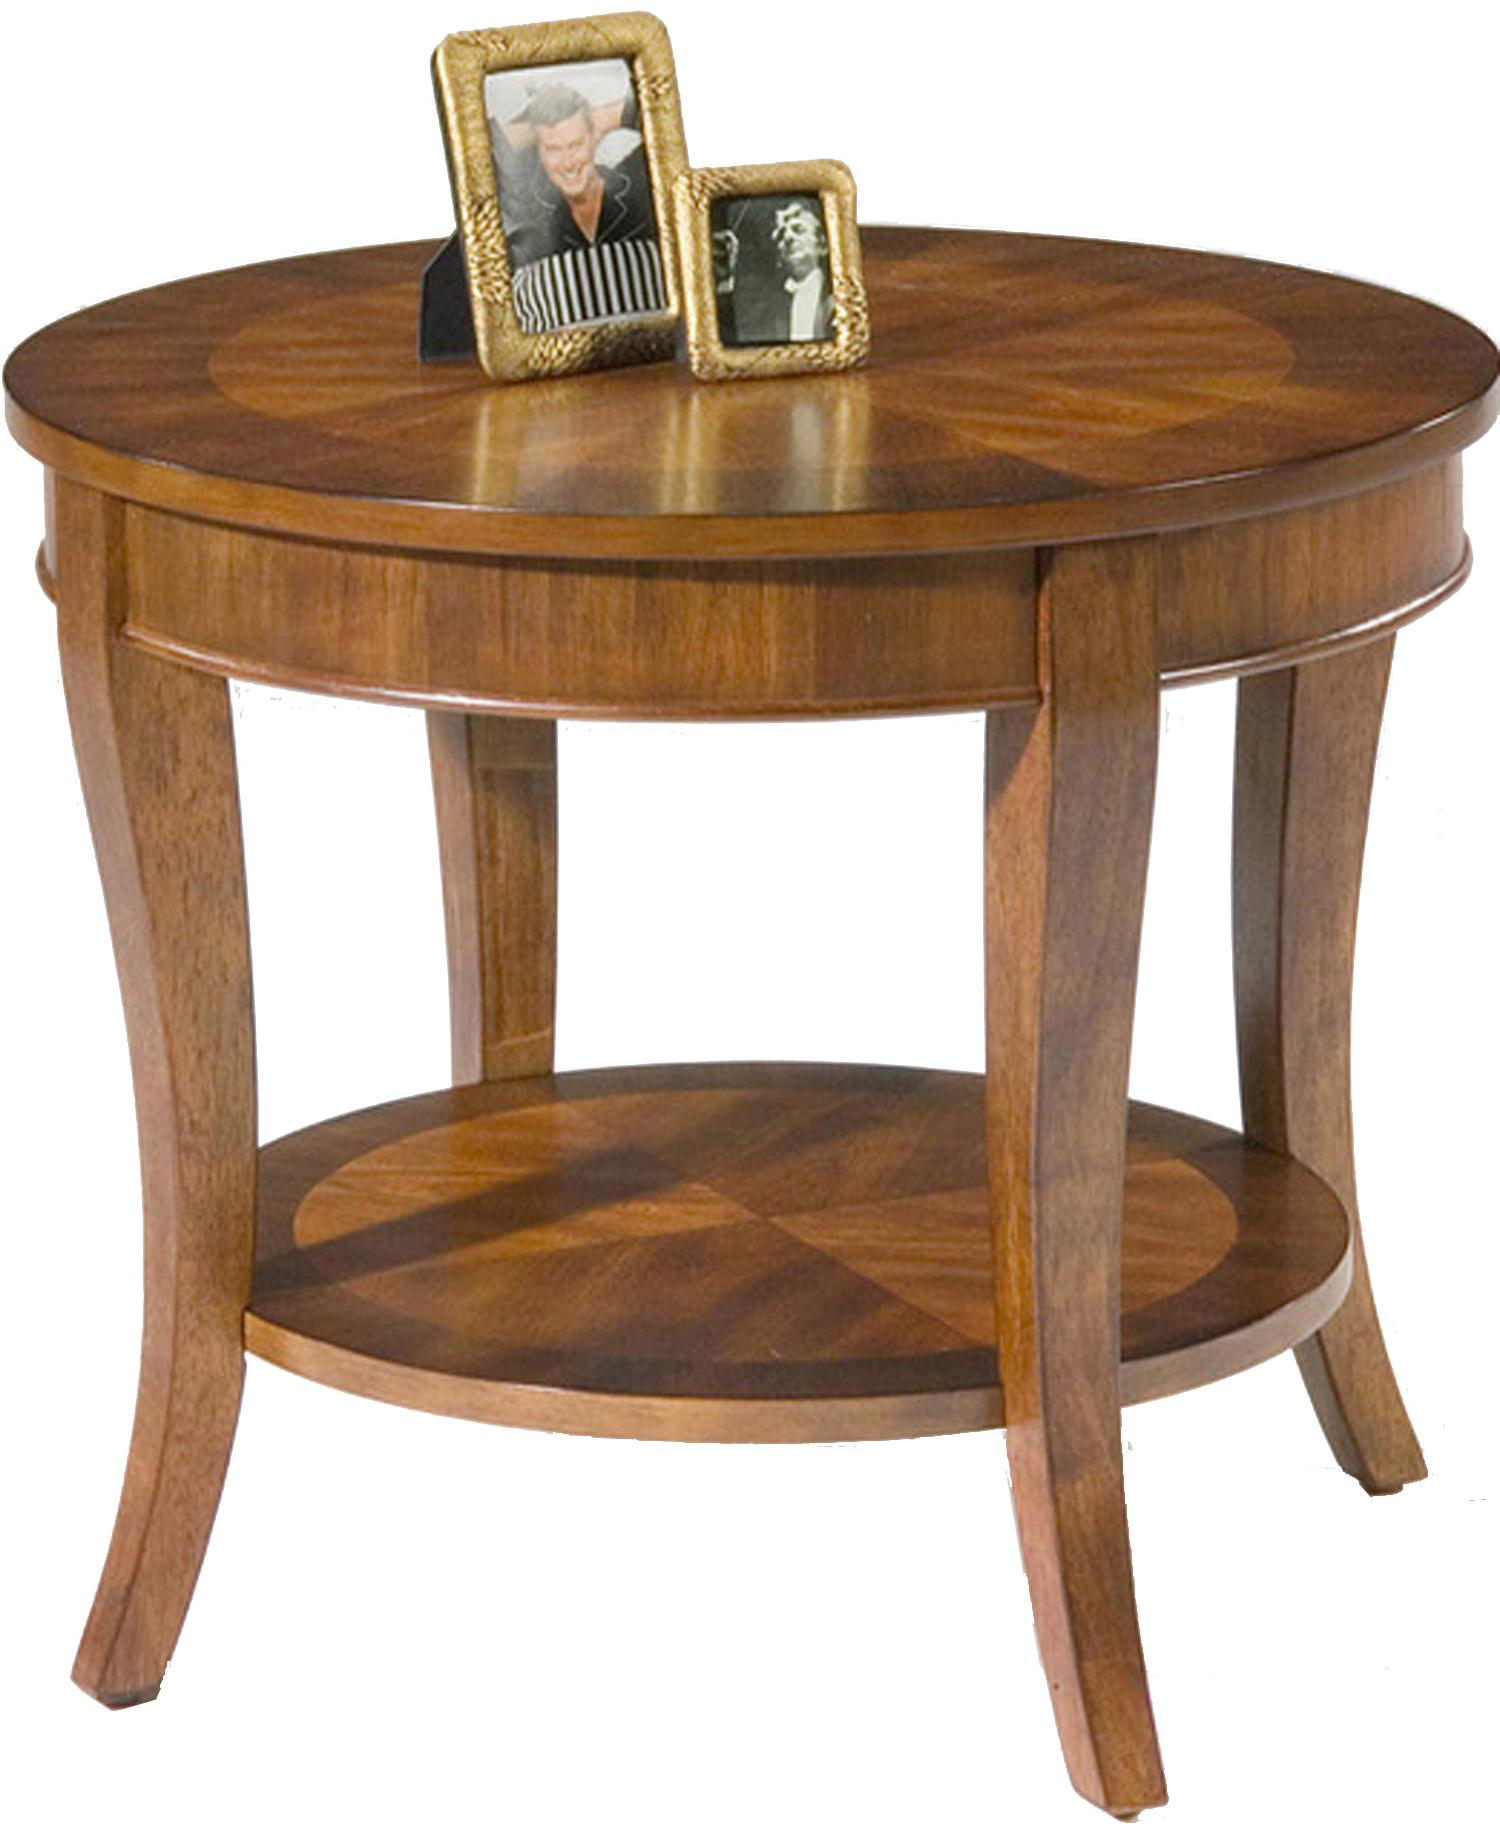 Liberty Furniture Bradshaw Round End Table - Item Number: 748-OT1020